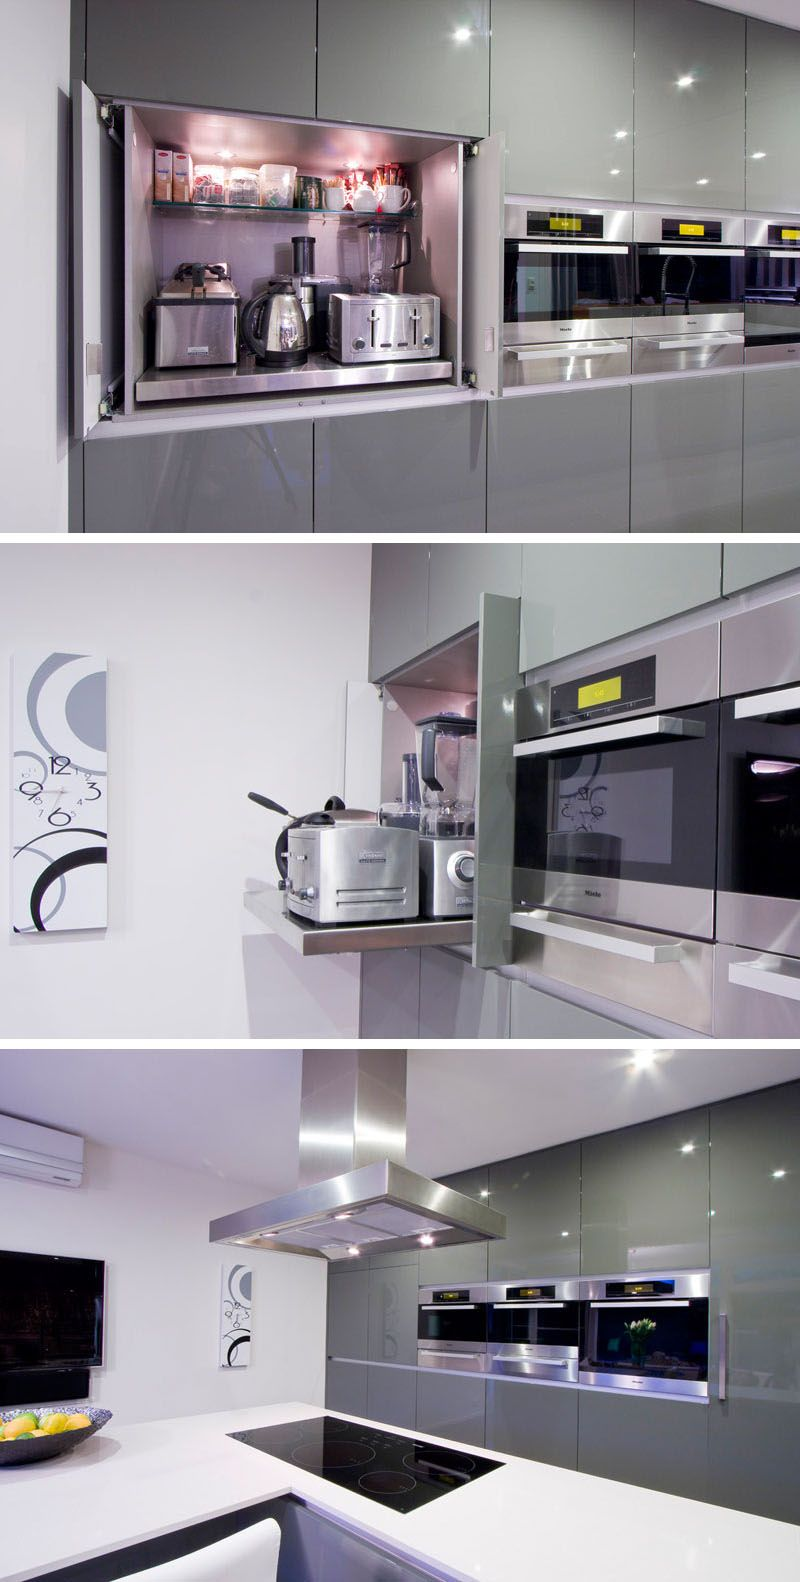 Küchenideen klein kitchen design idea  pullout counters  pullout counters are